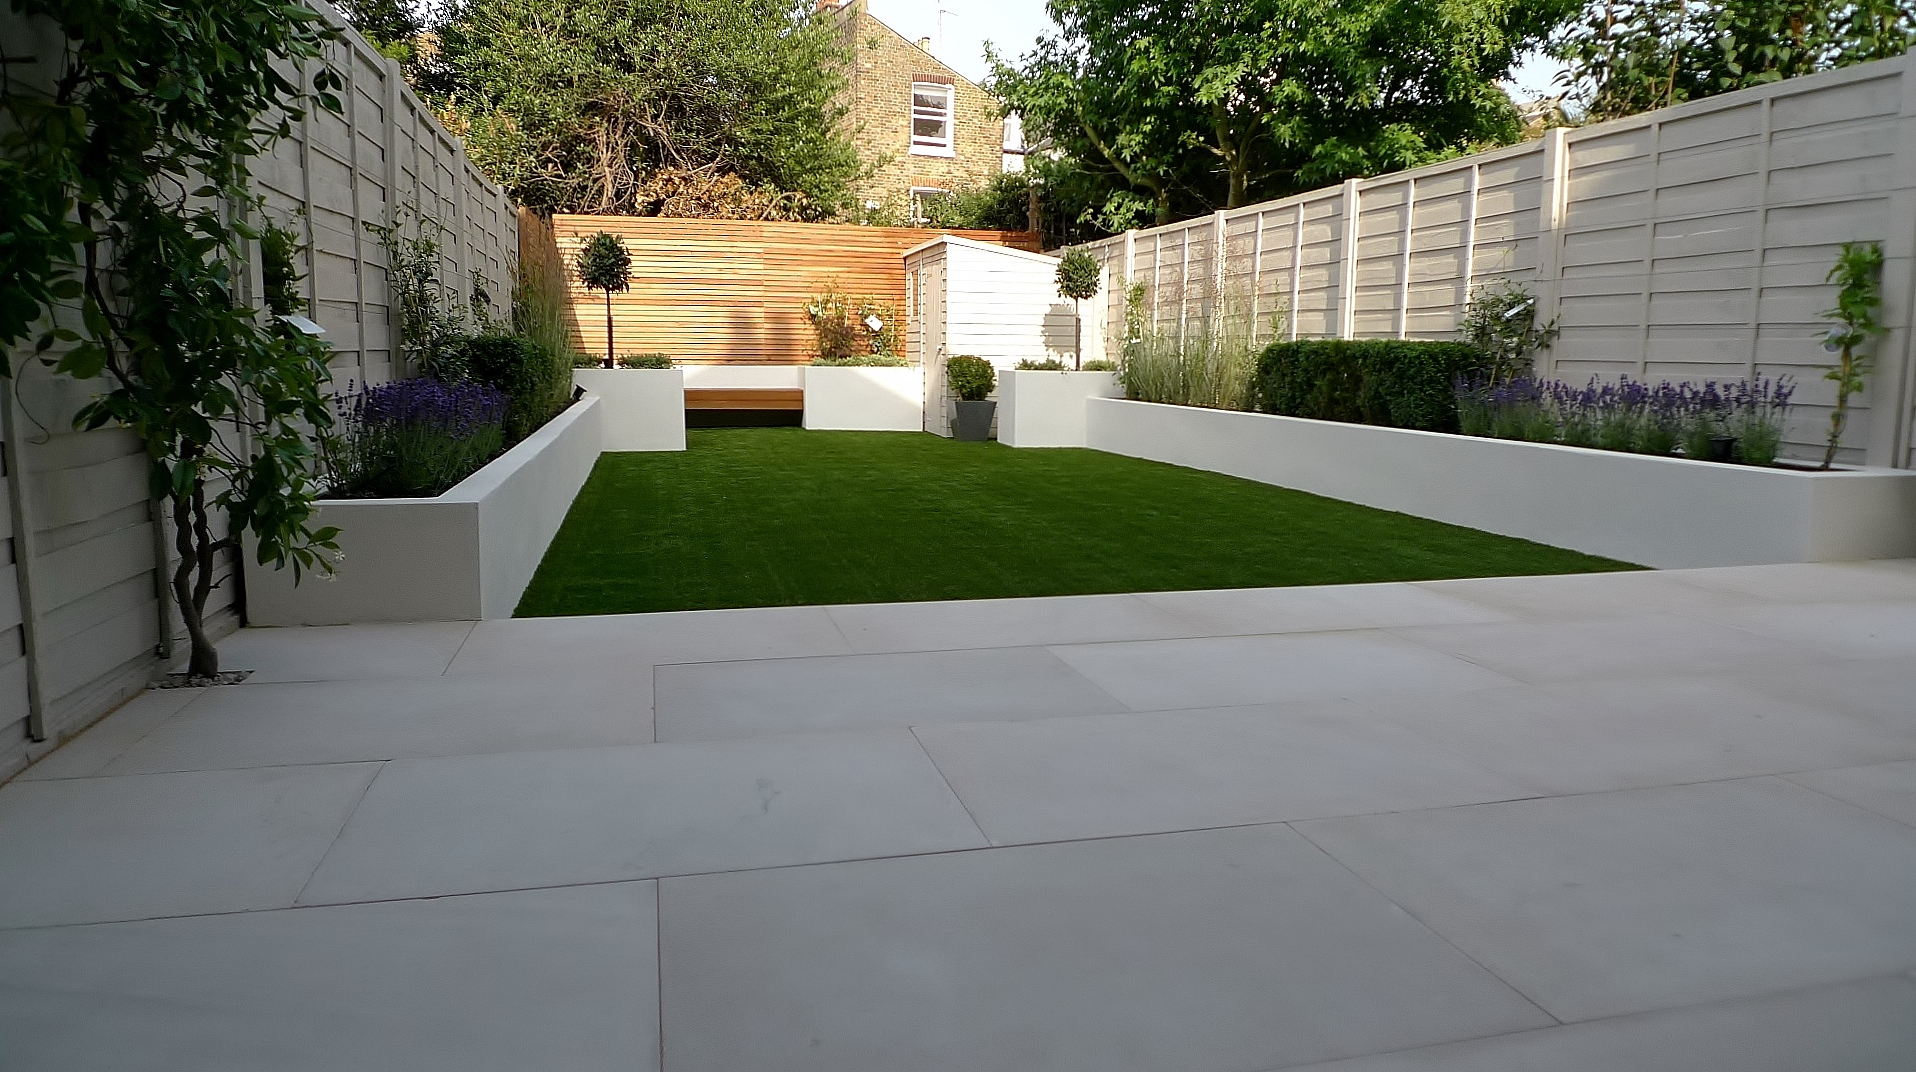 Sandstone London Garden Design